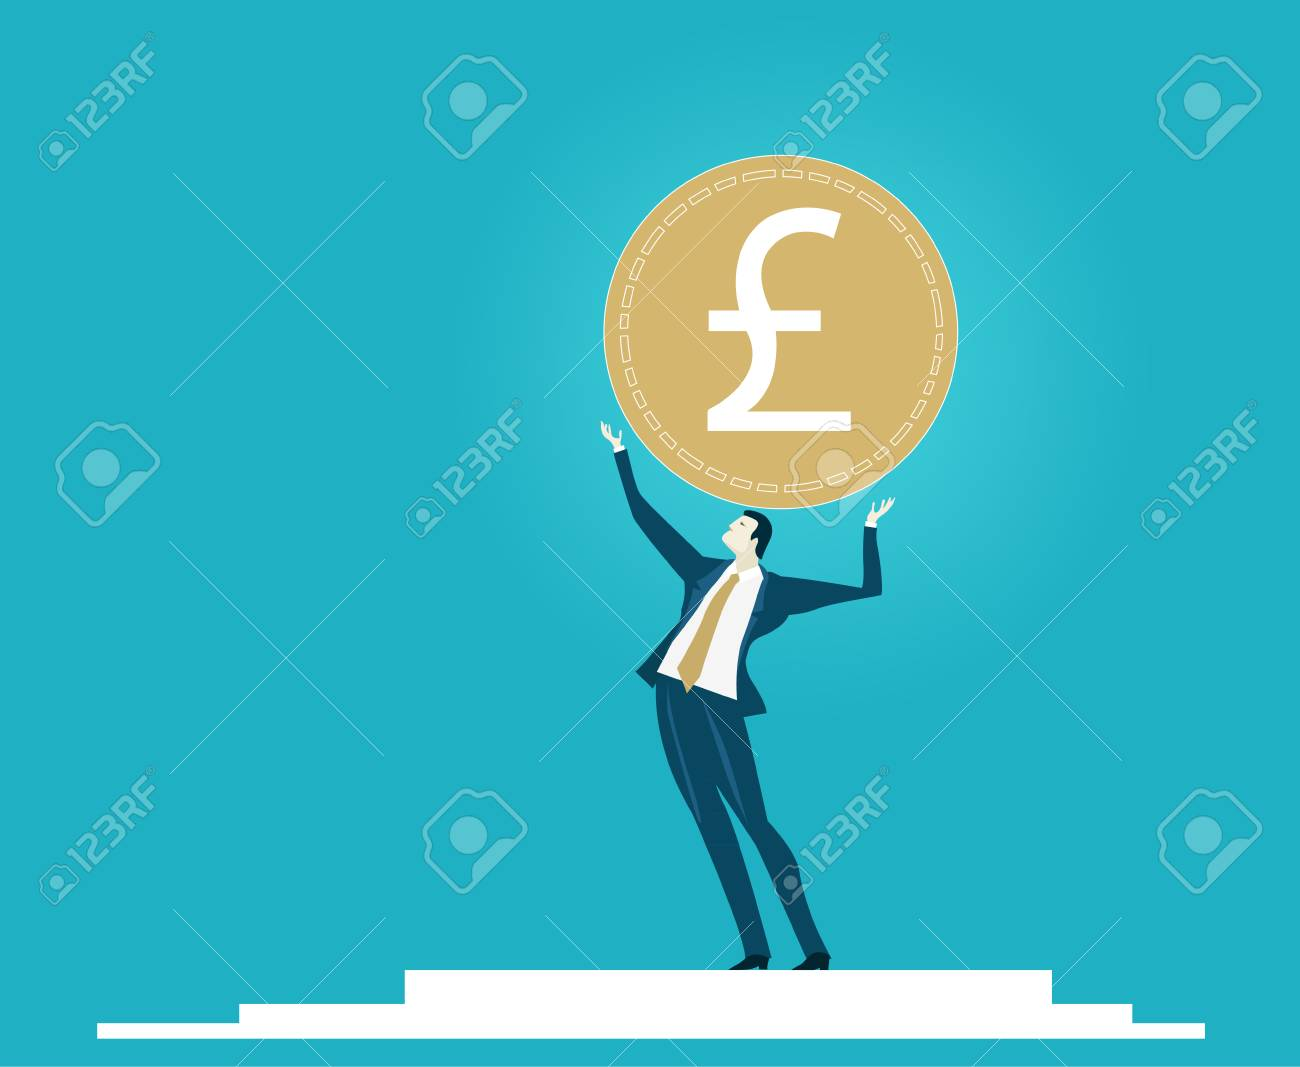 Businessmen holding up the currency symbol british pound economy businessmen holding up the currency symbol british pound economy recession brexit business biocorpaavc Images